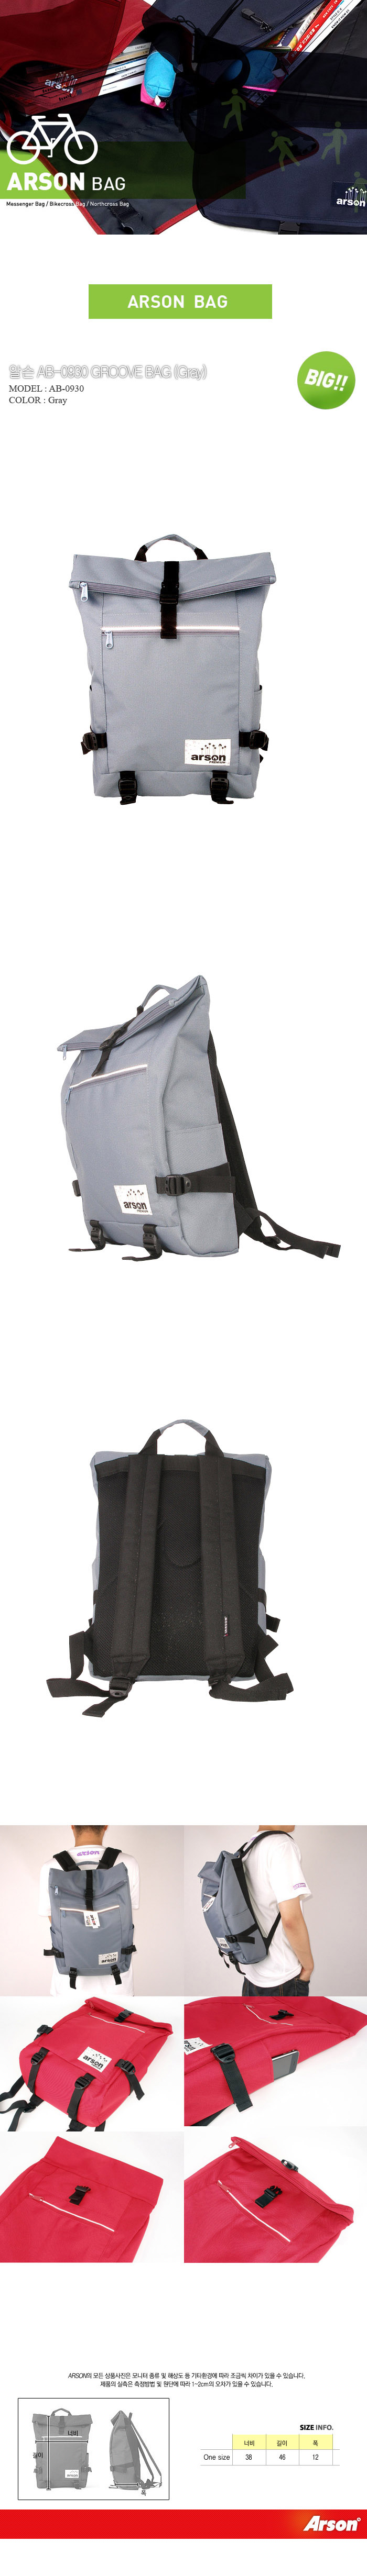 [ ARSON ] AB-0930 (Grey)/Backpack School Bag